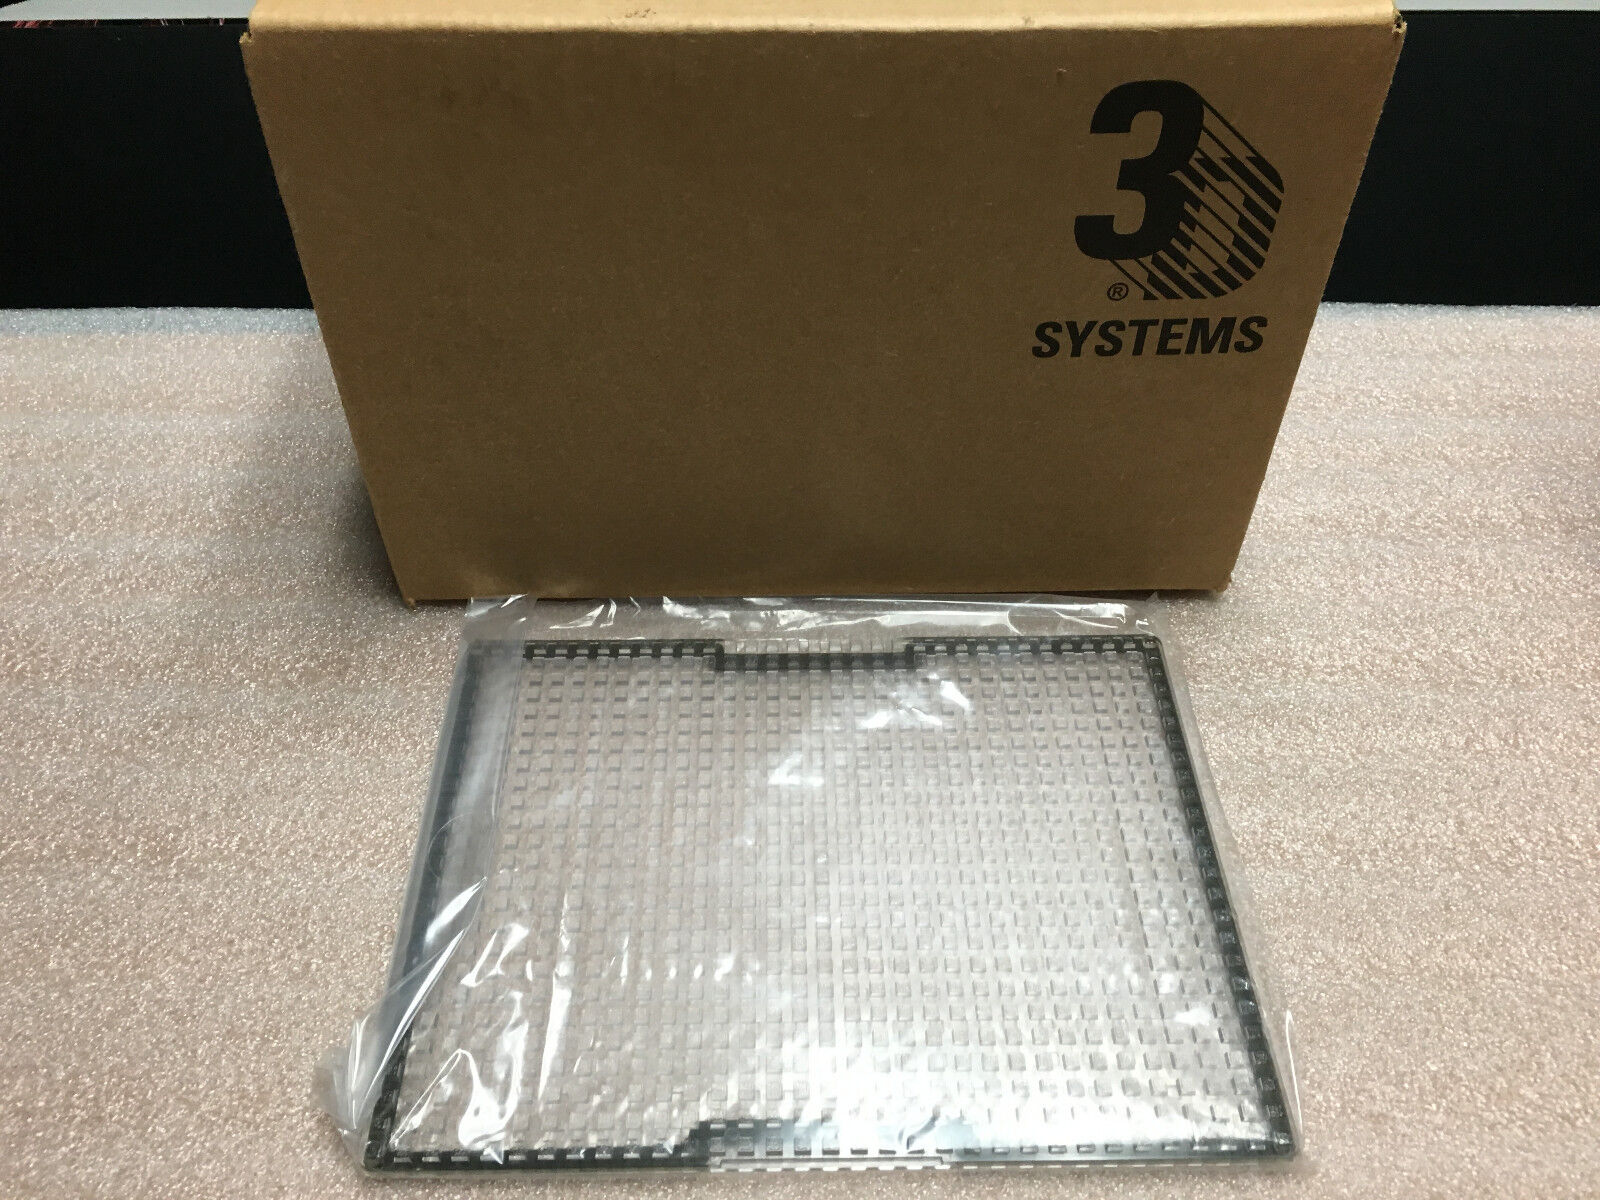 3D Systems/V-Flash BUILD PADS - NEW CASE OF 20 sealed build pads. ONE BOX